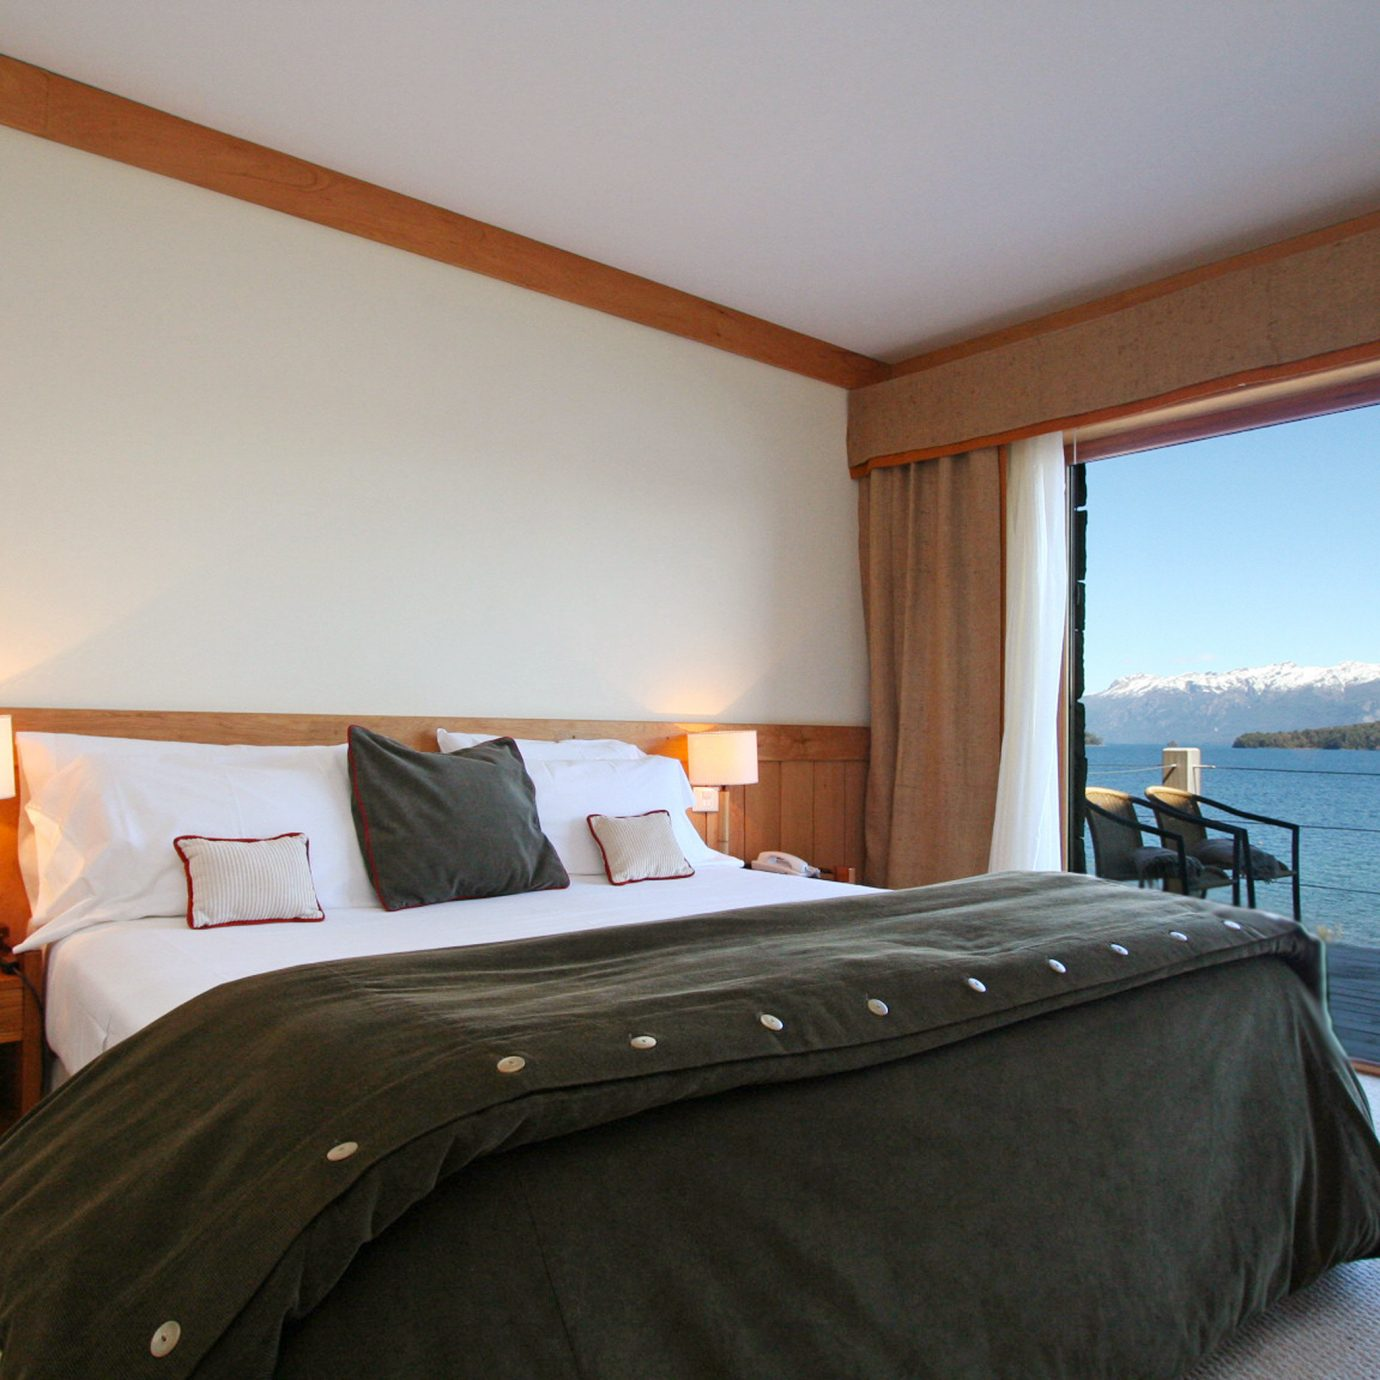 Bedroom Lake Scenic views Waterfront property Suite cottage Villa